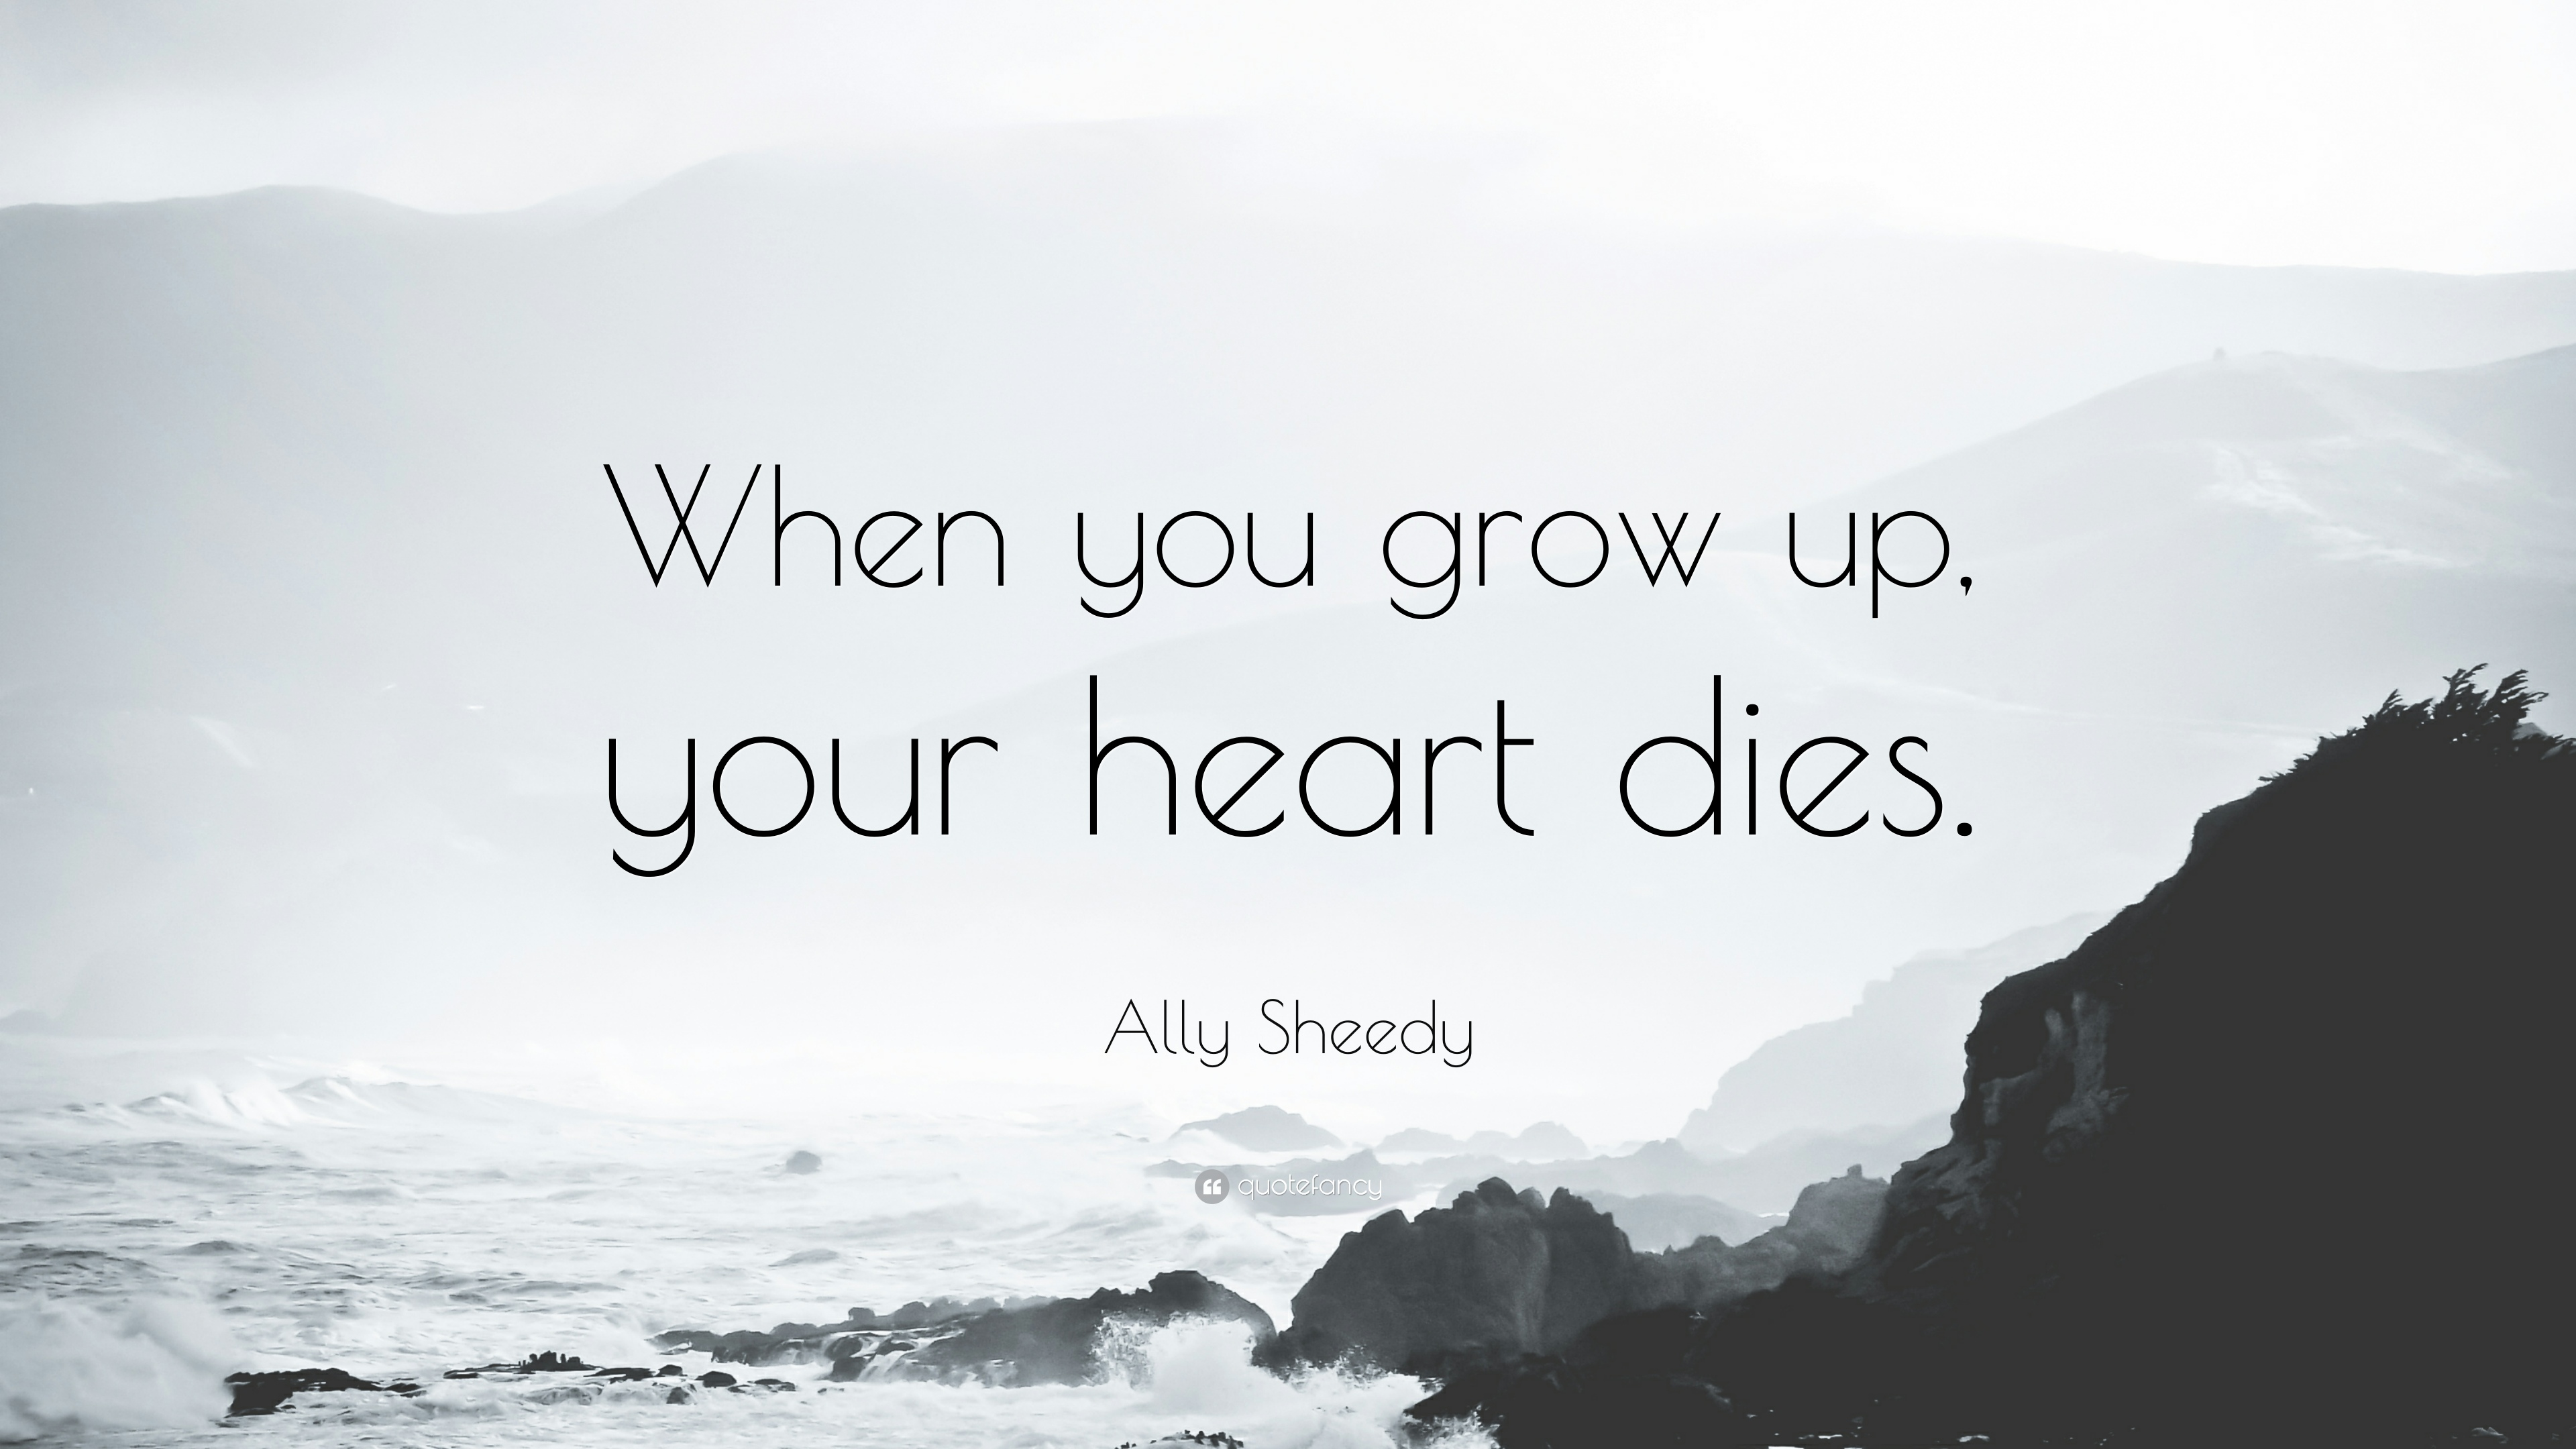 Ally Sheedy Quote When You Grow Up Your Heart Dies 12